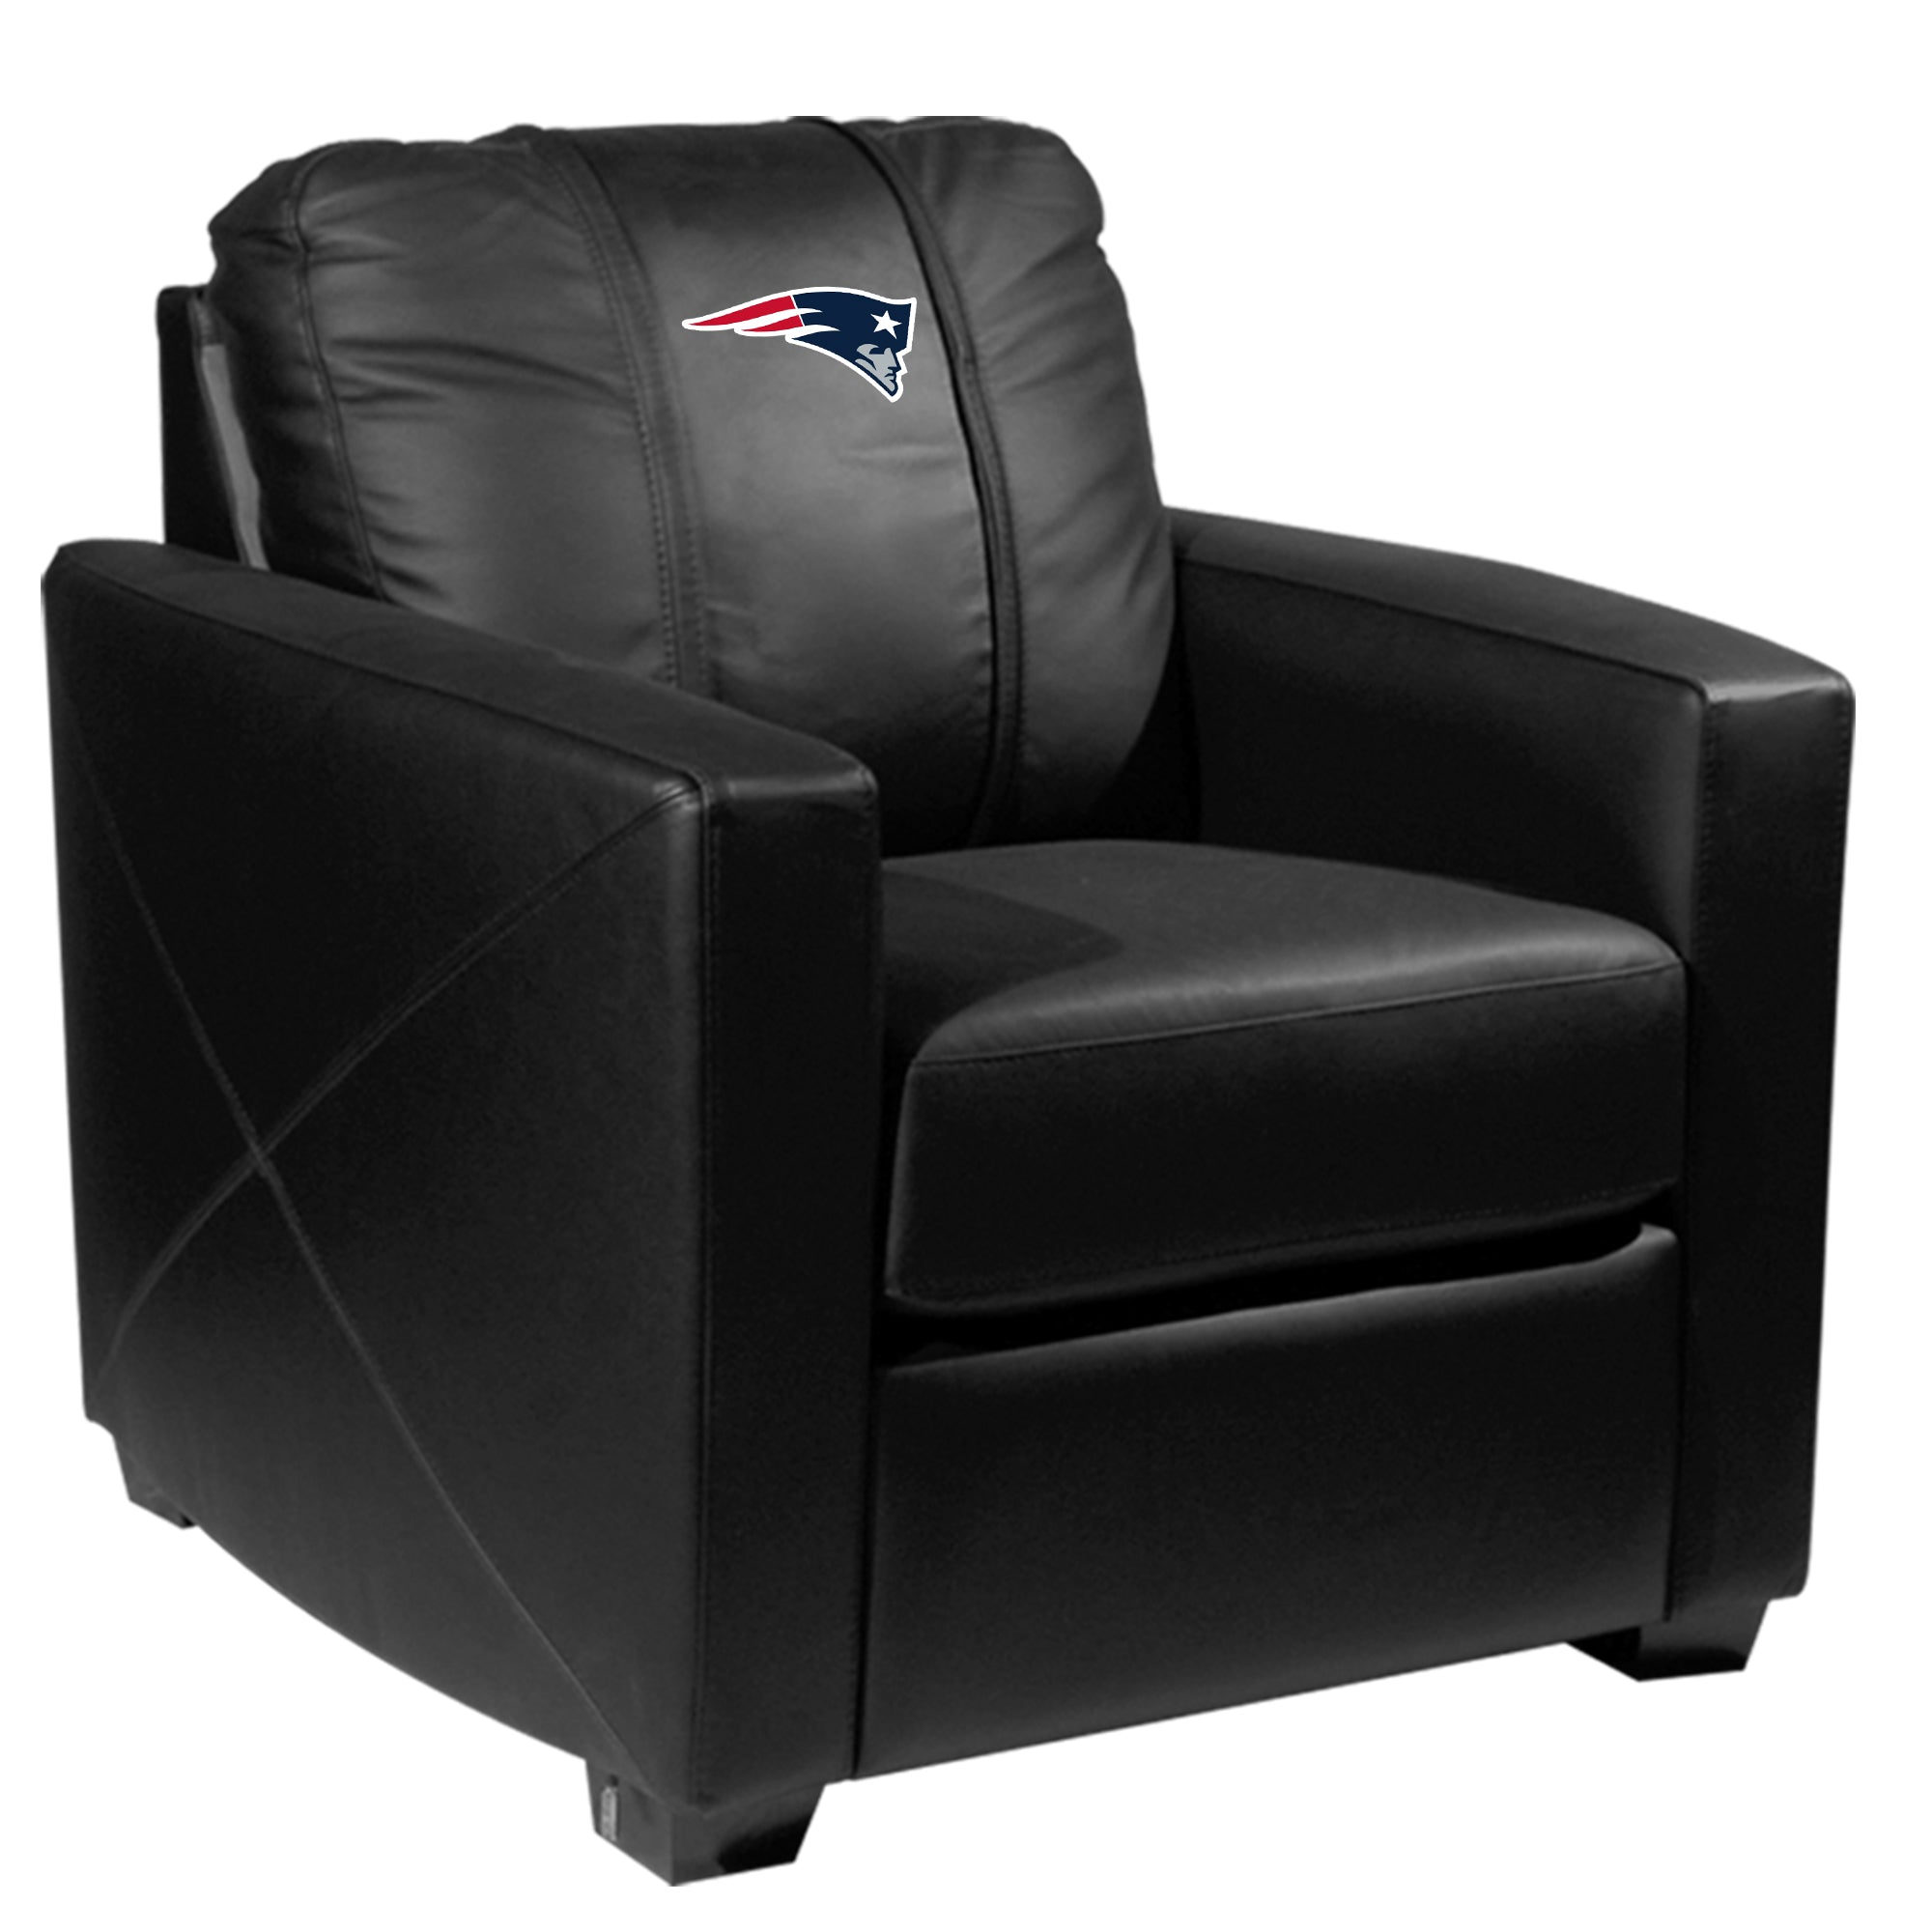 Silver Club Chair with  New England Patriots Primary Logo